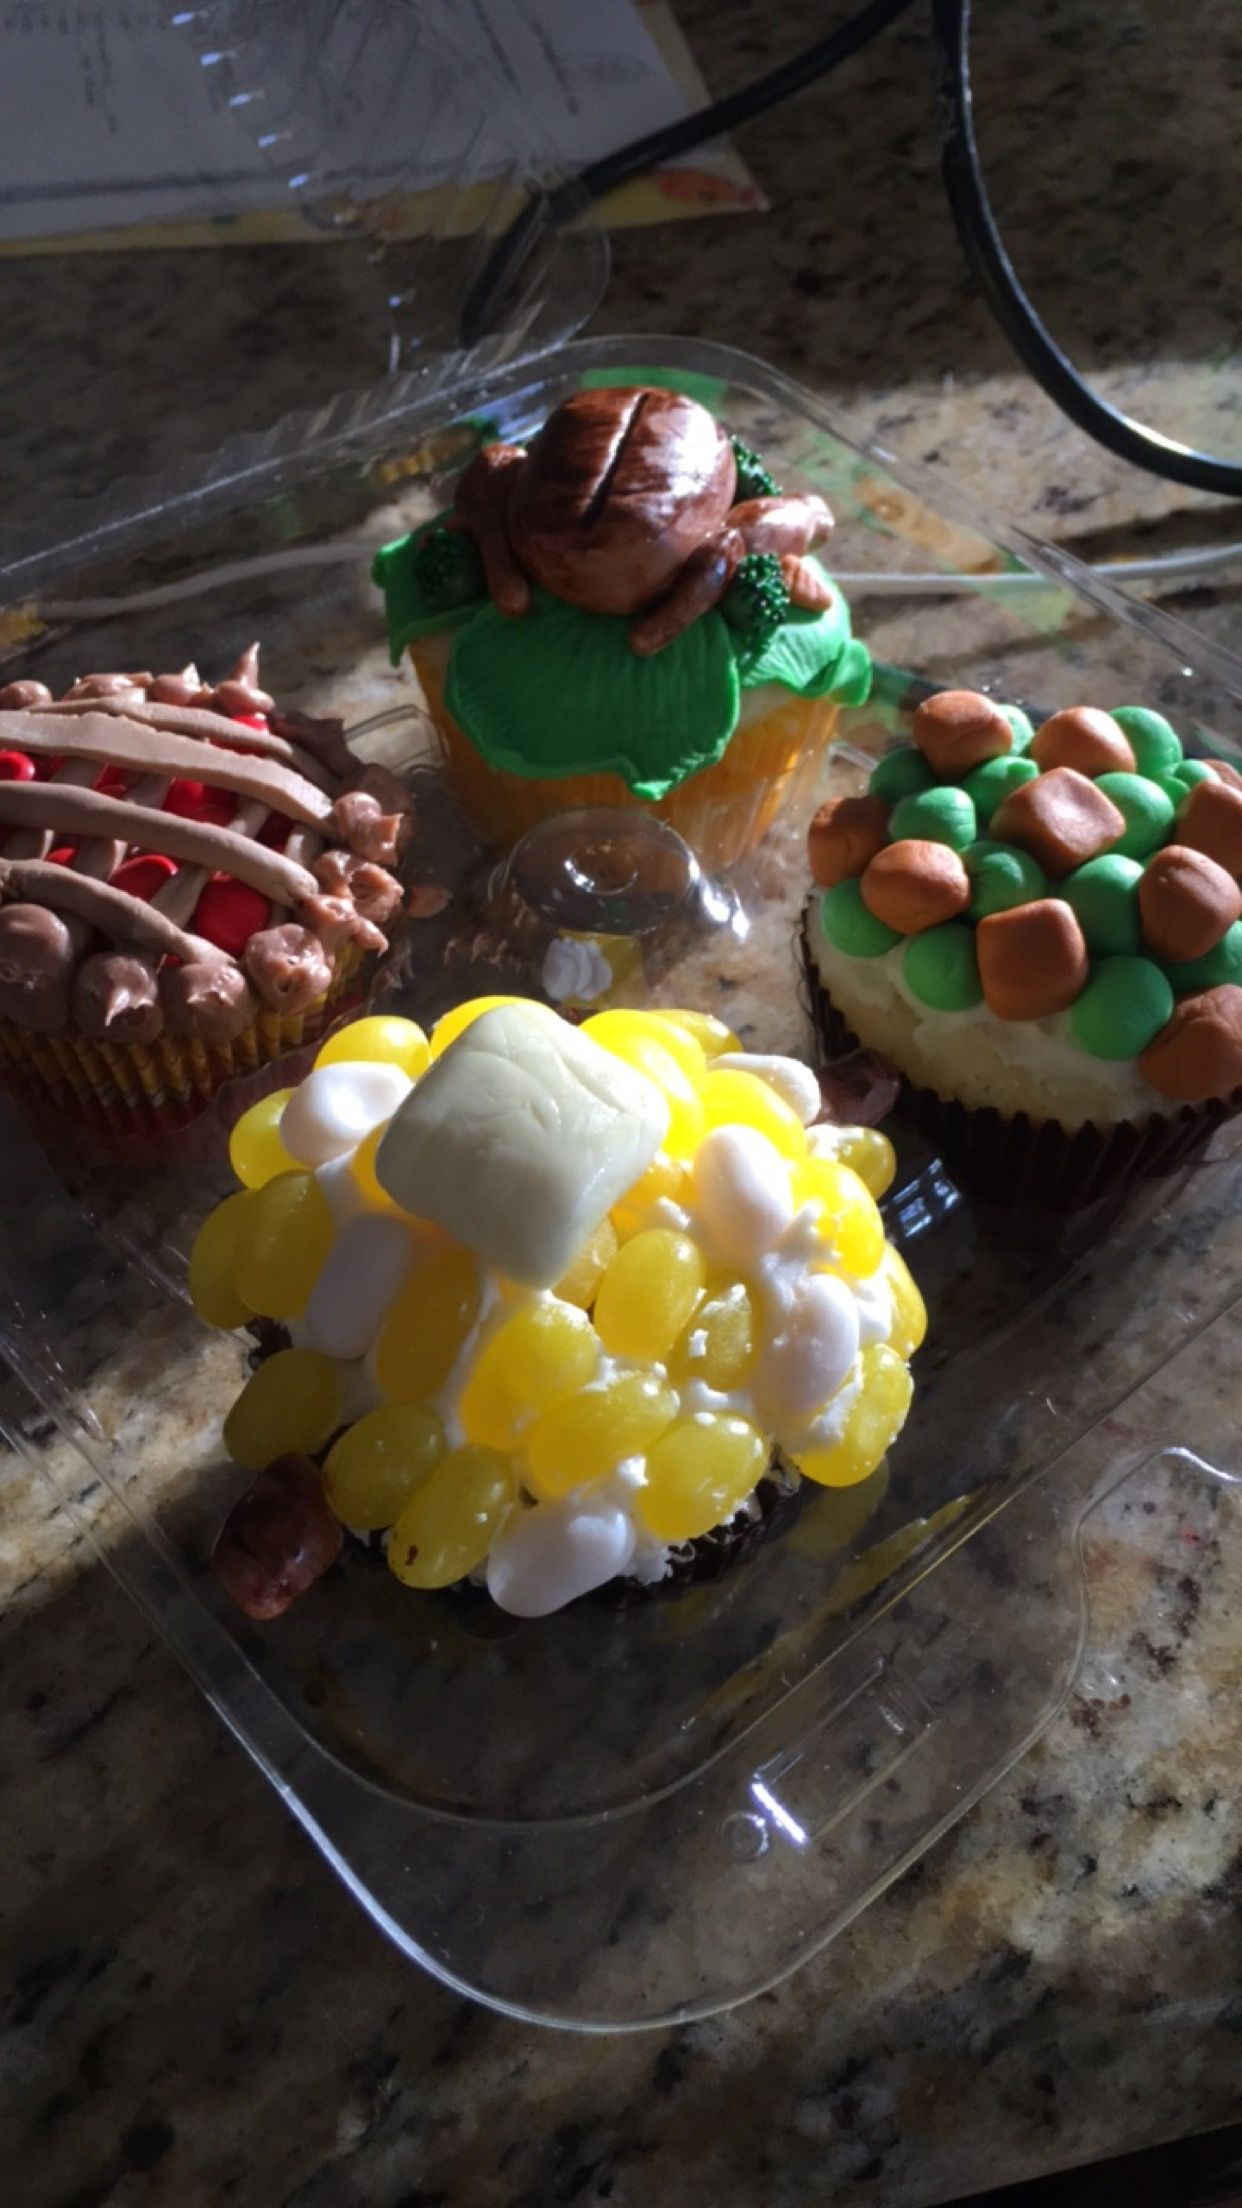 Homemade cupcakes. Thanksgiving style